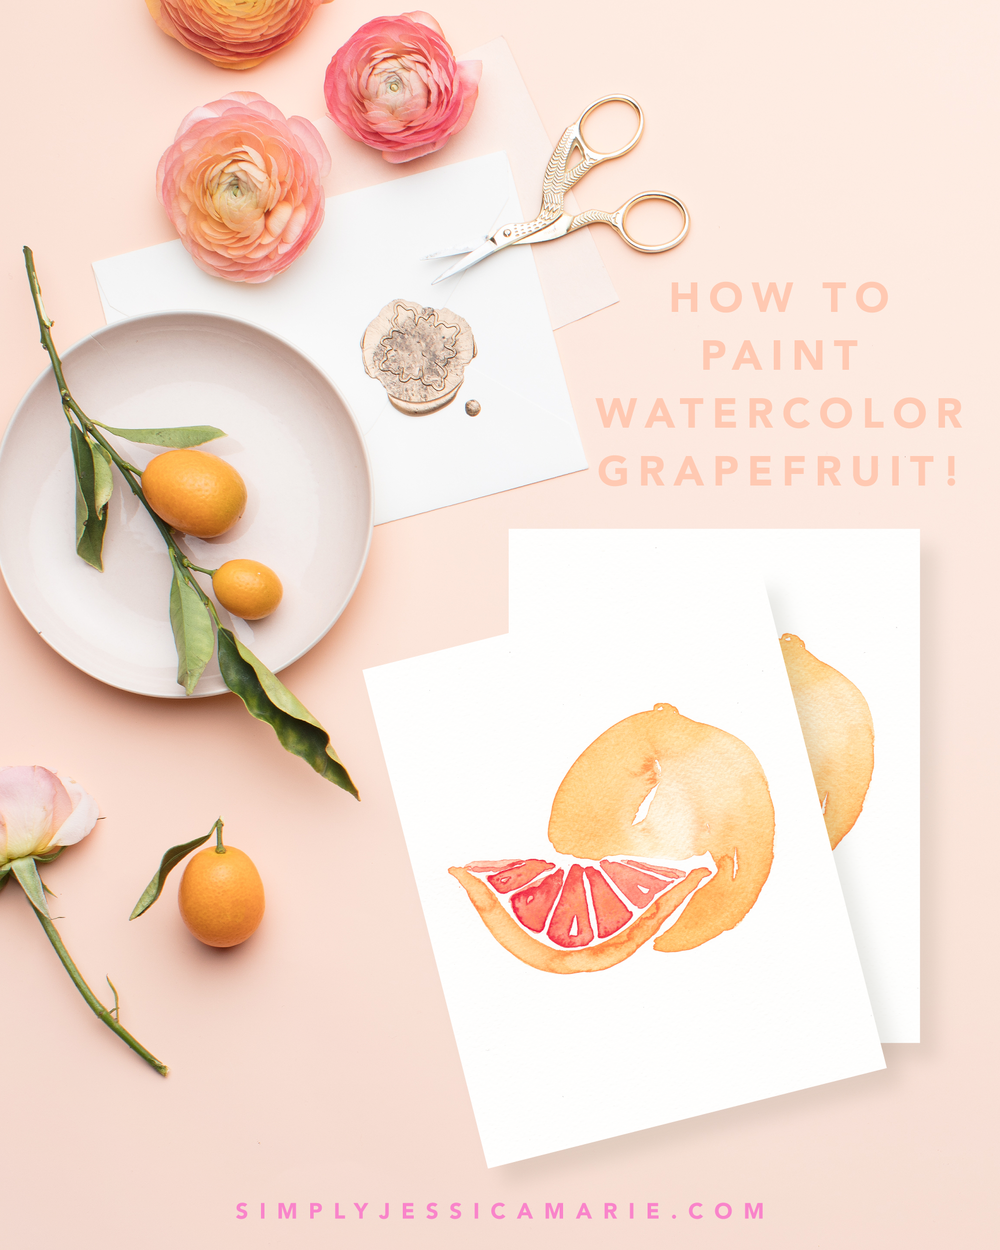 How to paint watercolor grapefruit! Fun and free watercolor videos by Simply Jessica Marie! Learn to mix new colors each week and paint with that color! | SC Stockshop